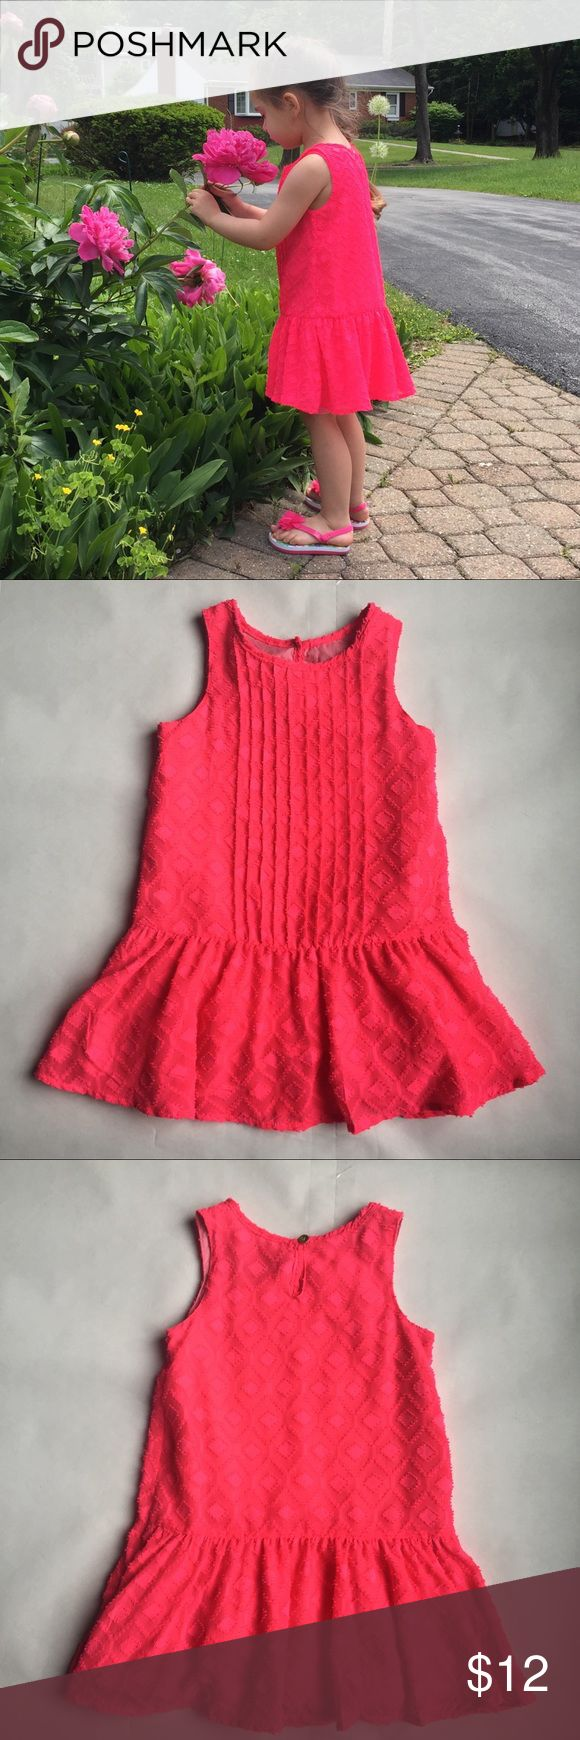 ⭐️HOST PICK⭐️Genuine Kids by OshKosh Dress  3T Like new, super cute Genuine Kids by OshKosh Hot Pink dress. A bit above casual. Textured fabric, pleated look front, keyhole button closure at back. Lined. Toddler size 3T.🌺 Genuine Kids by OshKosh Dresses Casual